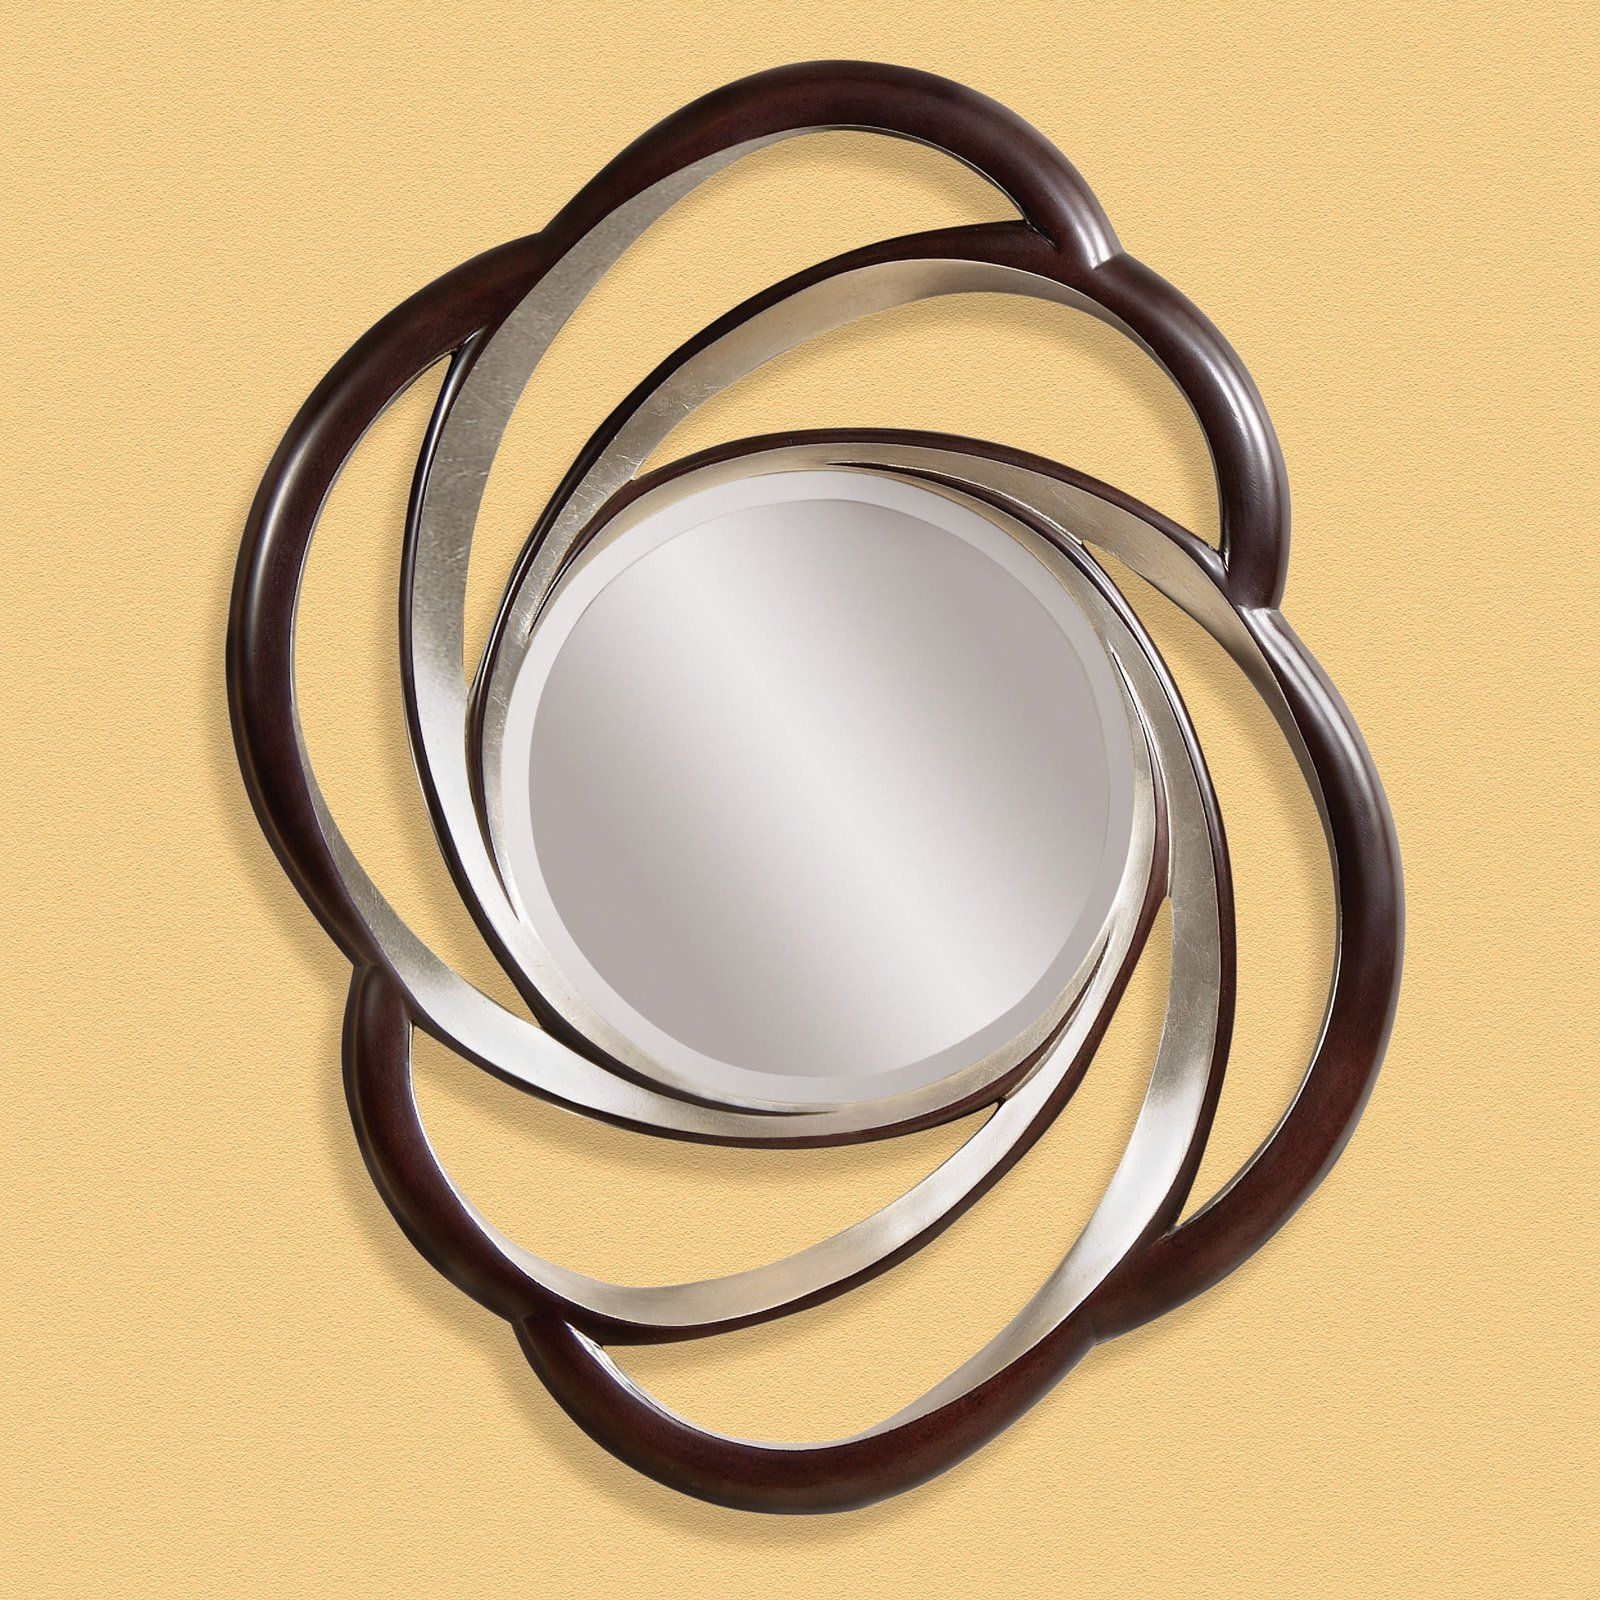 Silver | Jewelrys for inspiration | Pinterest | Modern wall mirrors ...